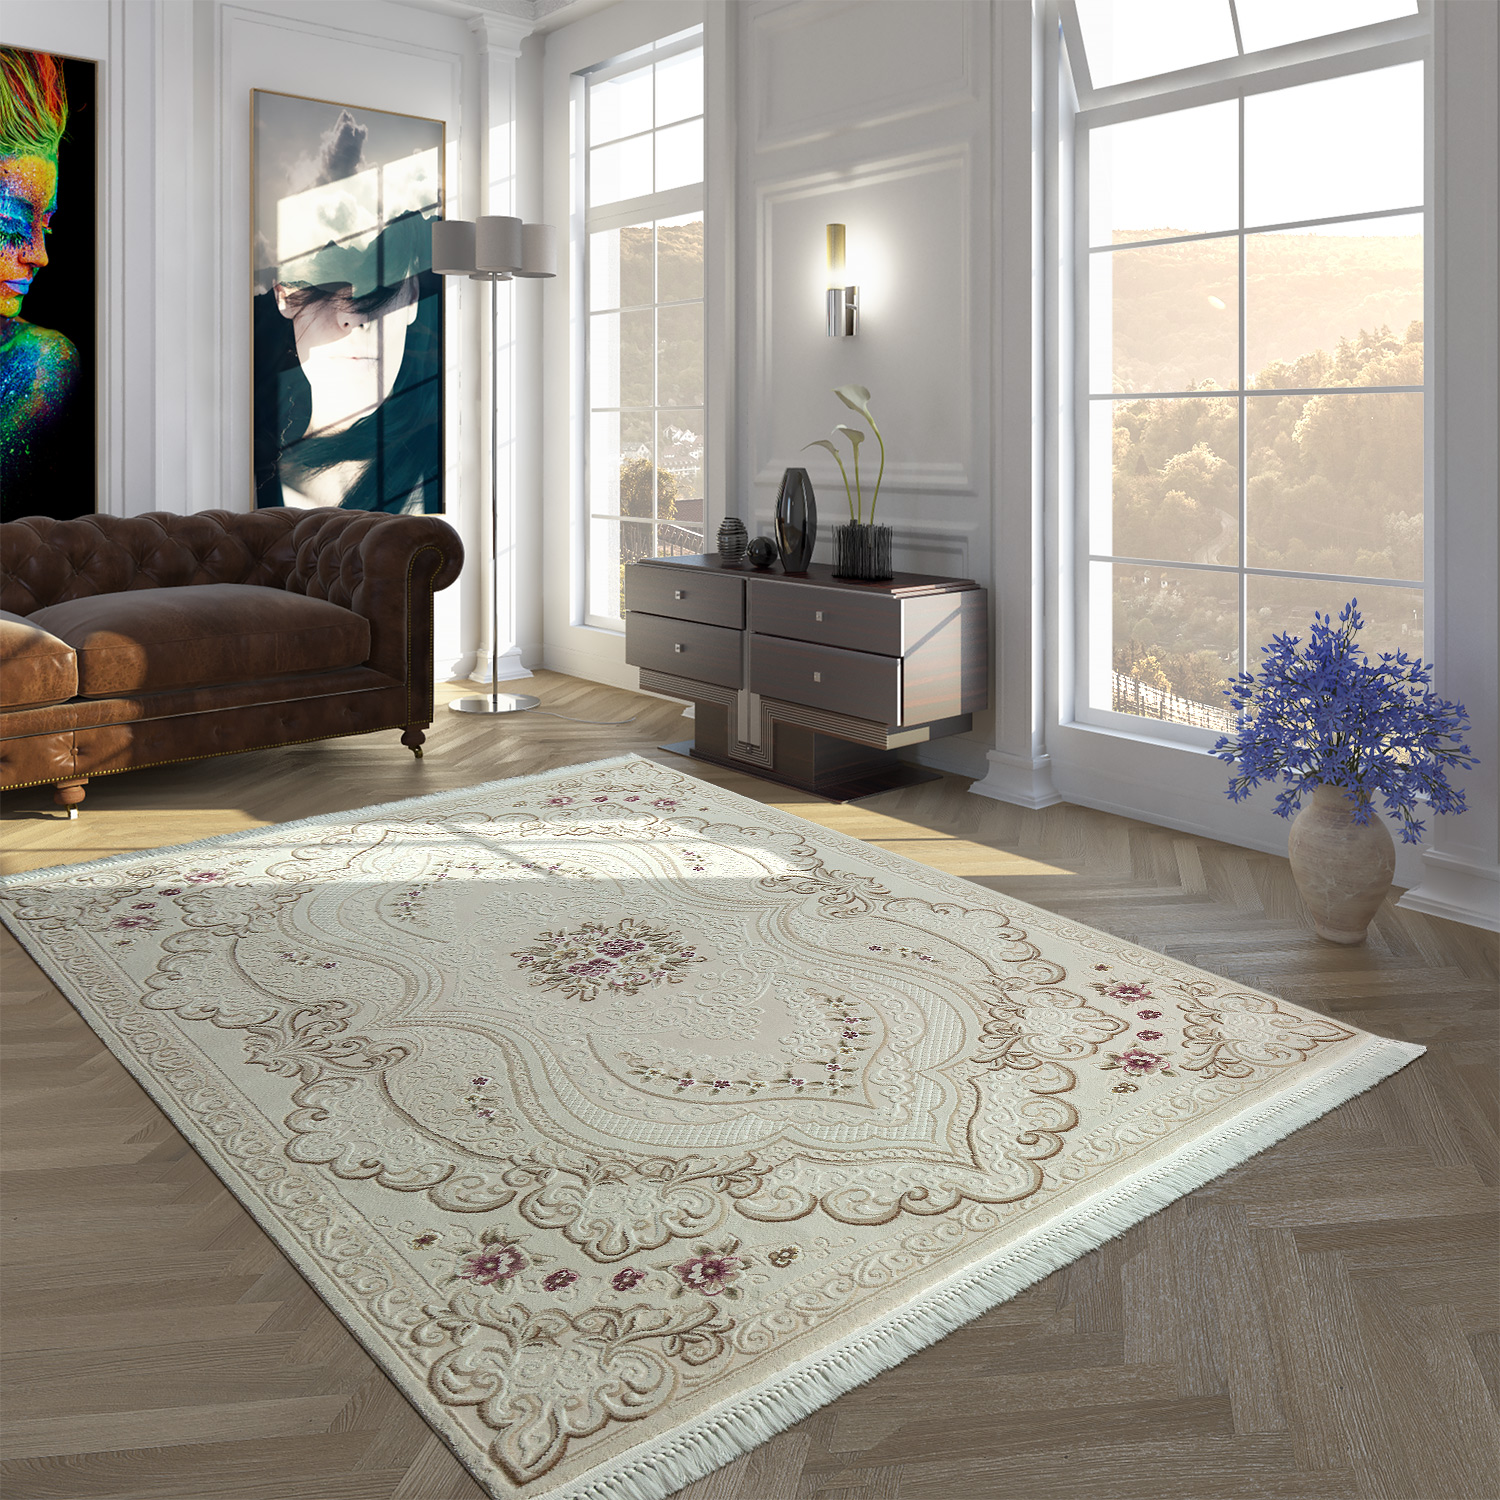 Polyacrylic Rug Short Pile High-Quality Classic Floral Vintage Fringes Cream Purple